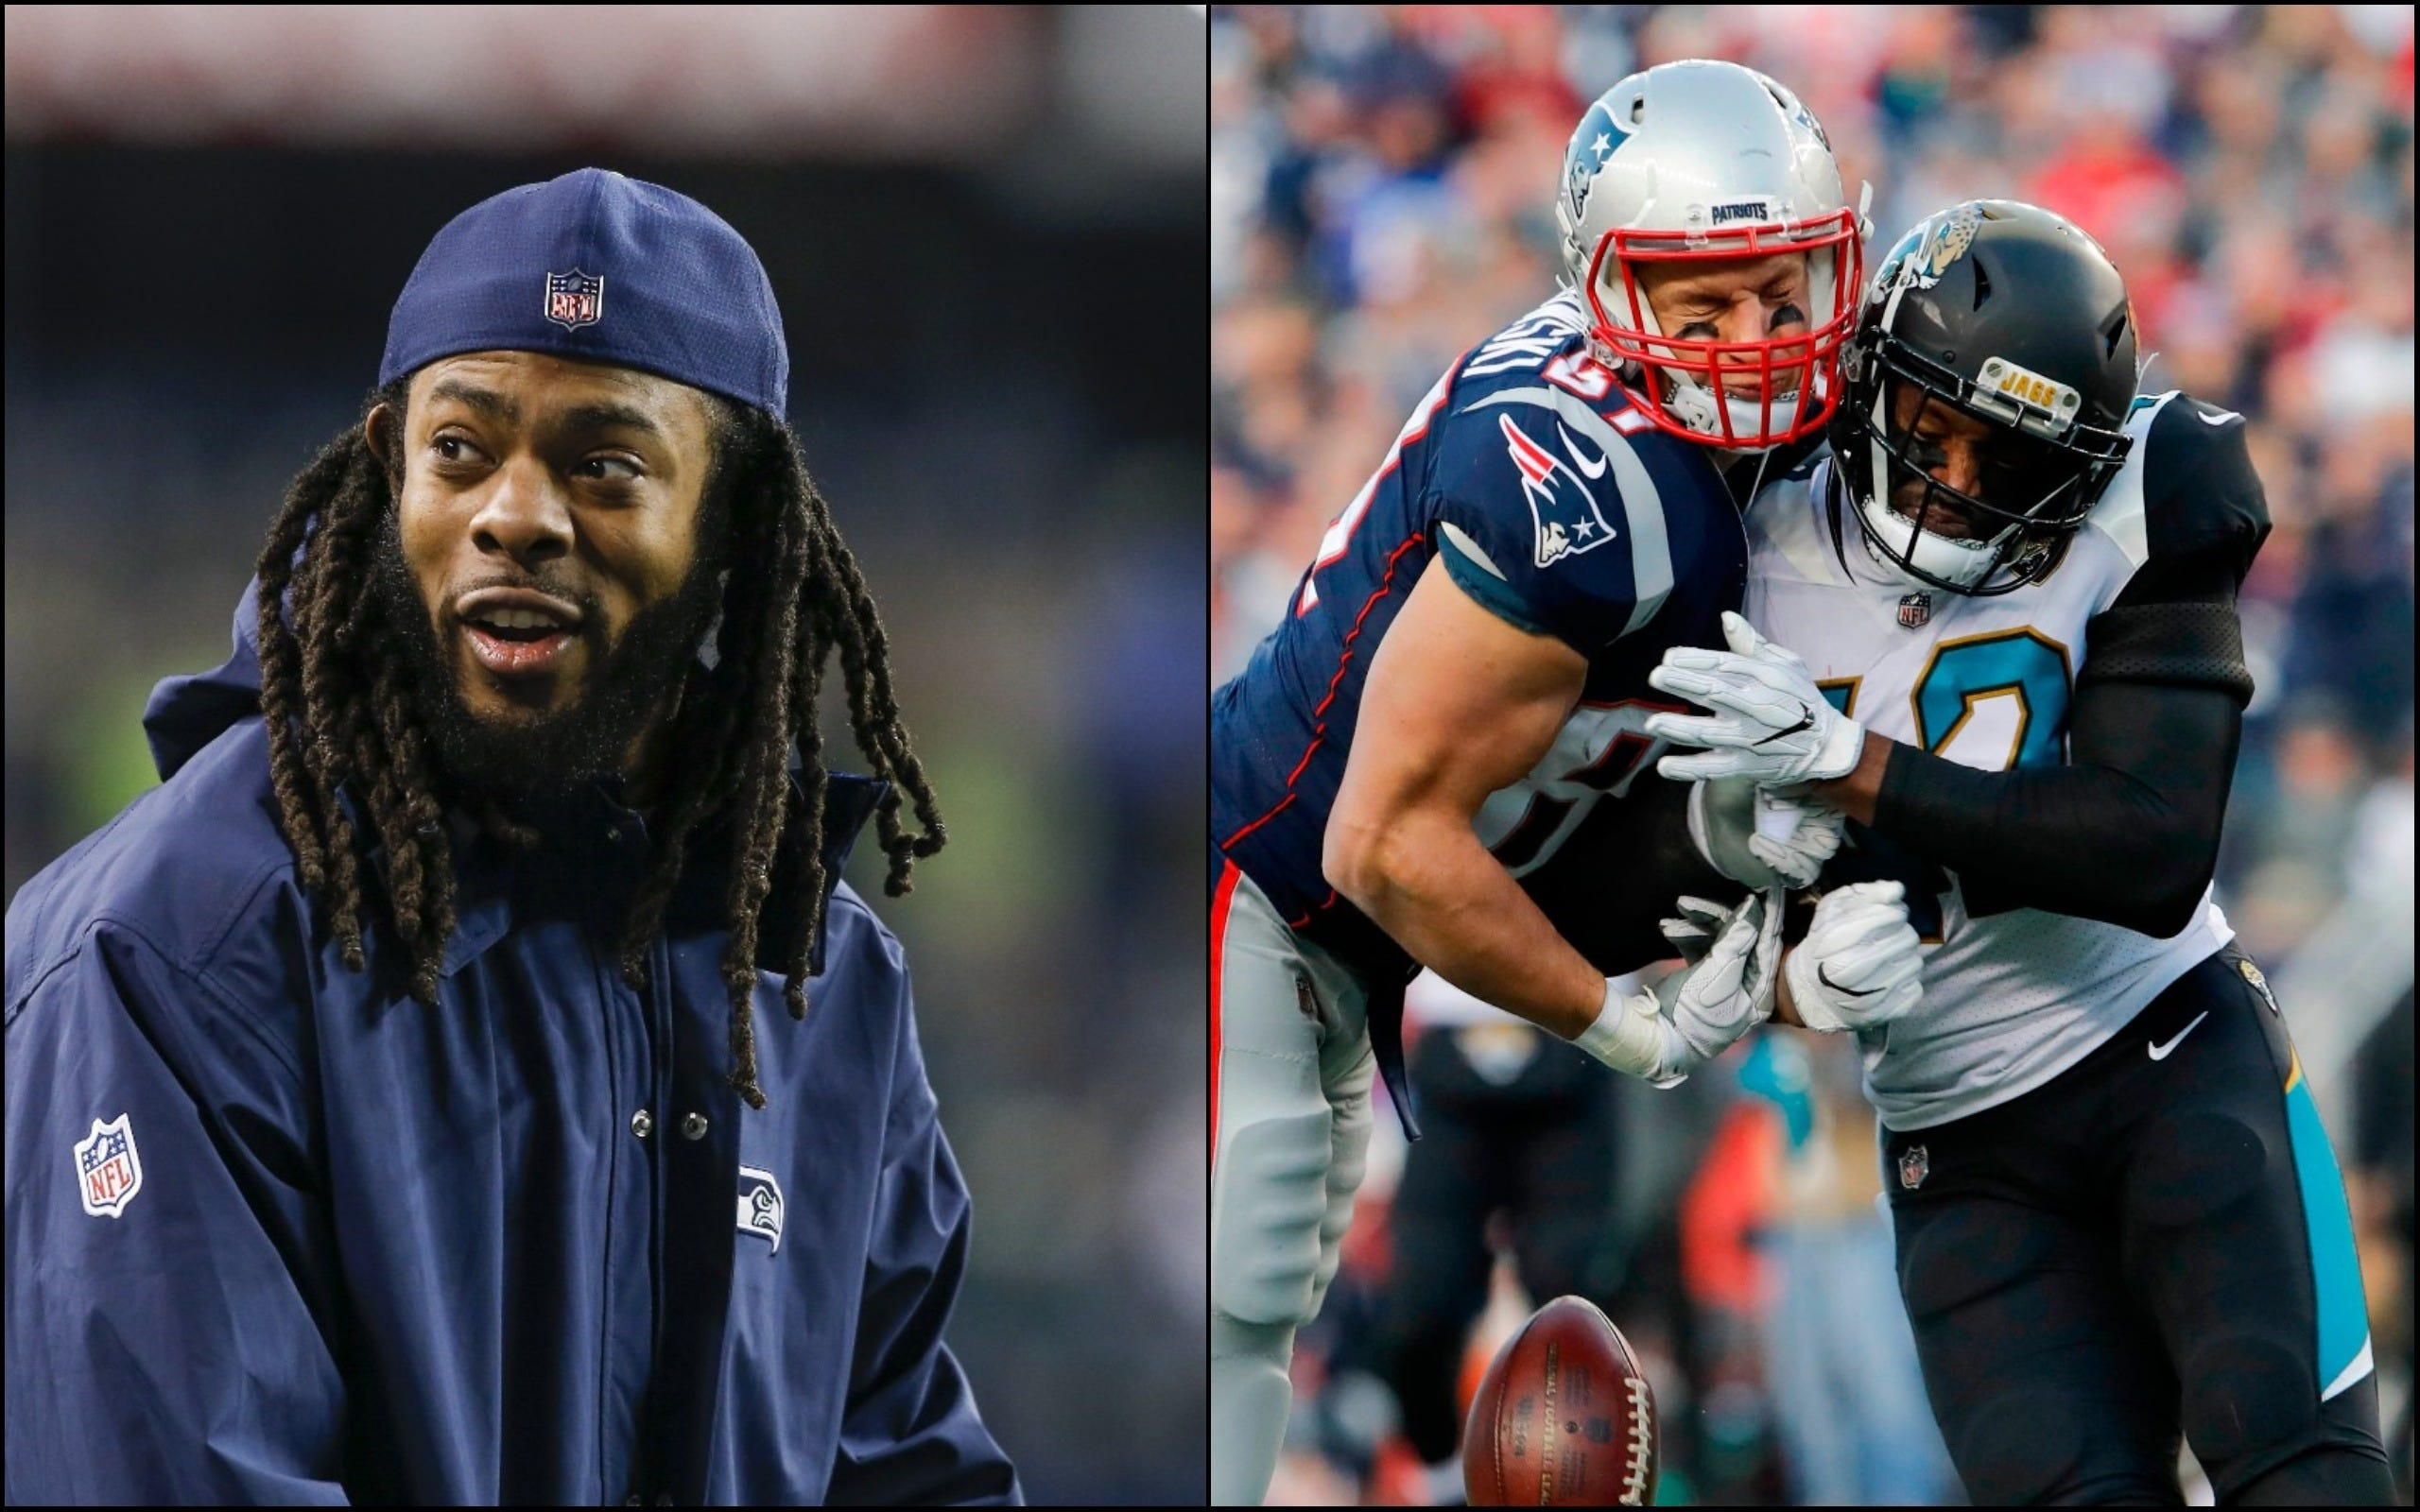 Richard Sherman defends the hit on Gronkowski